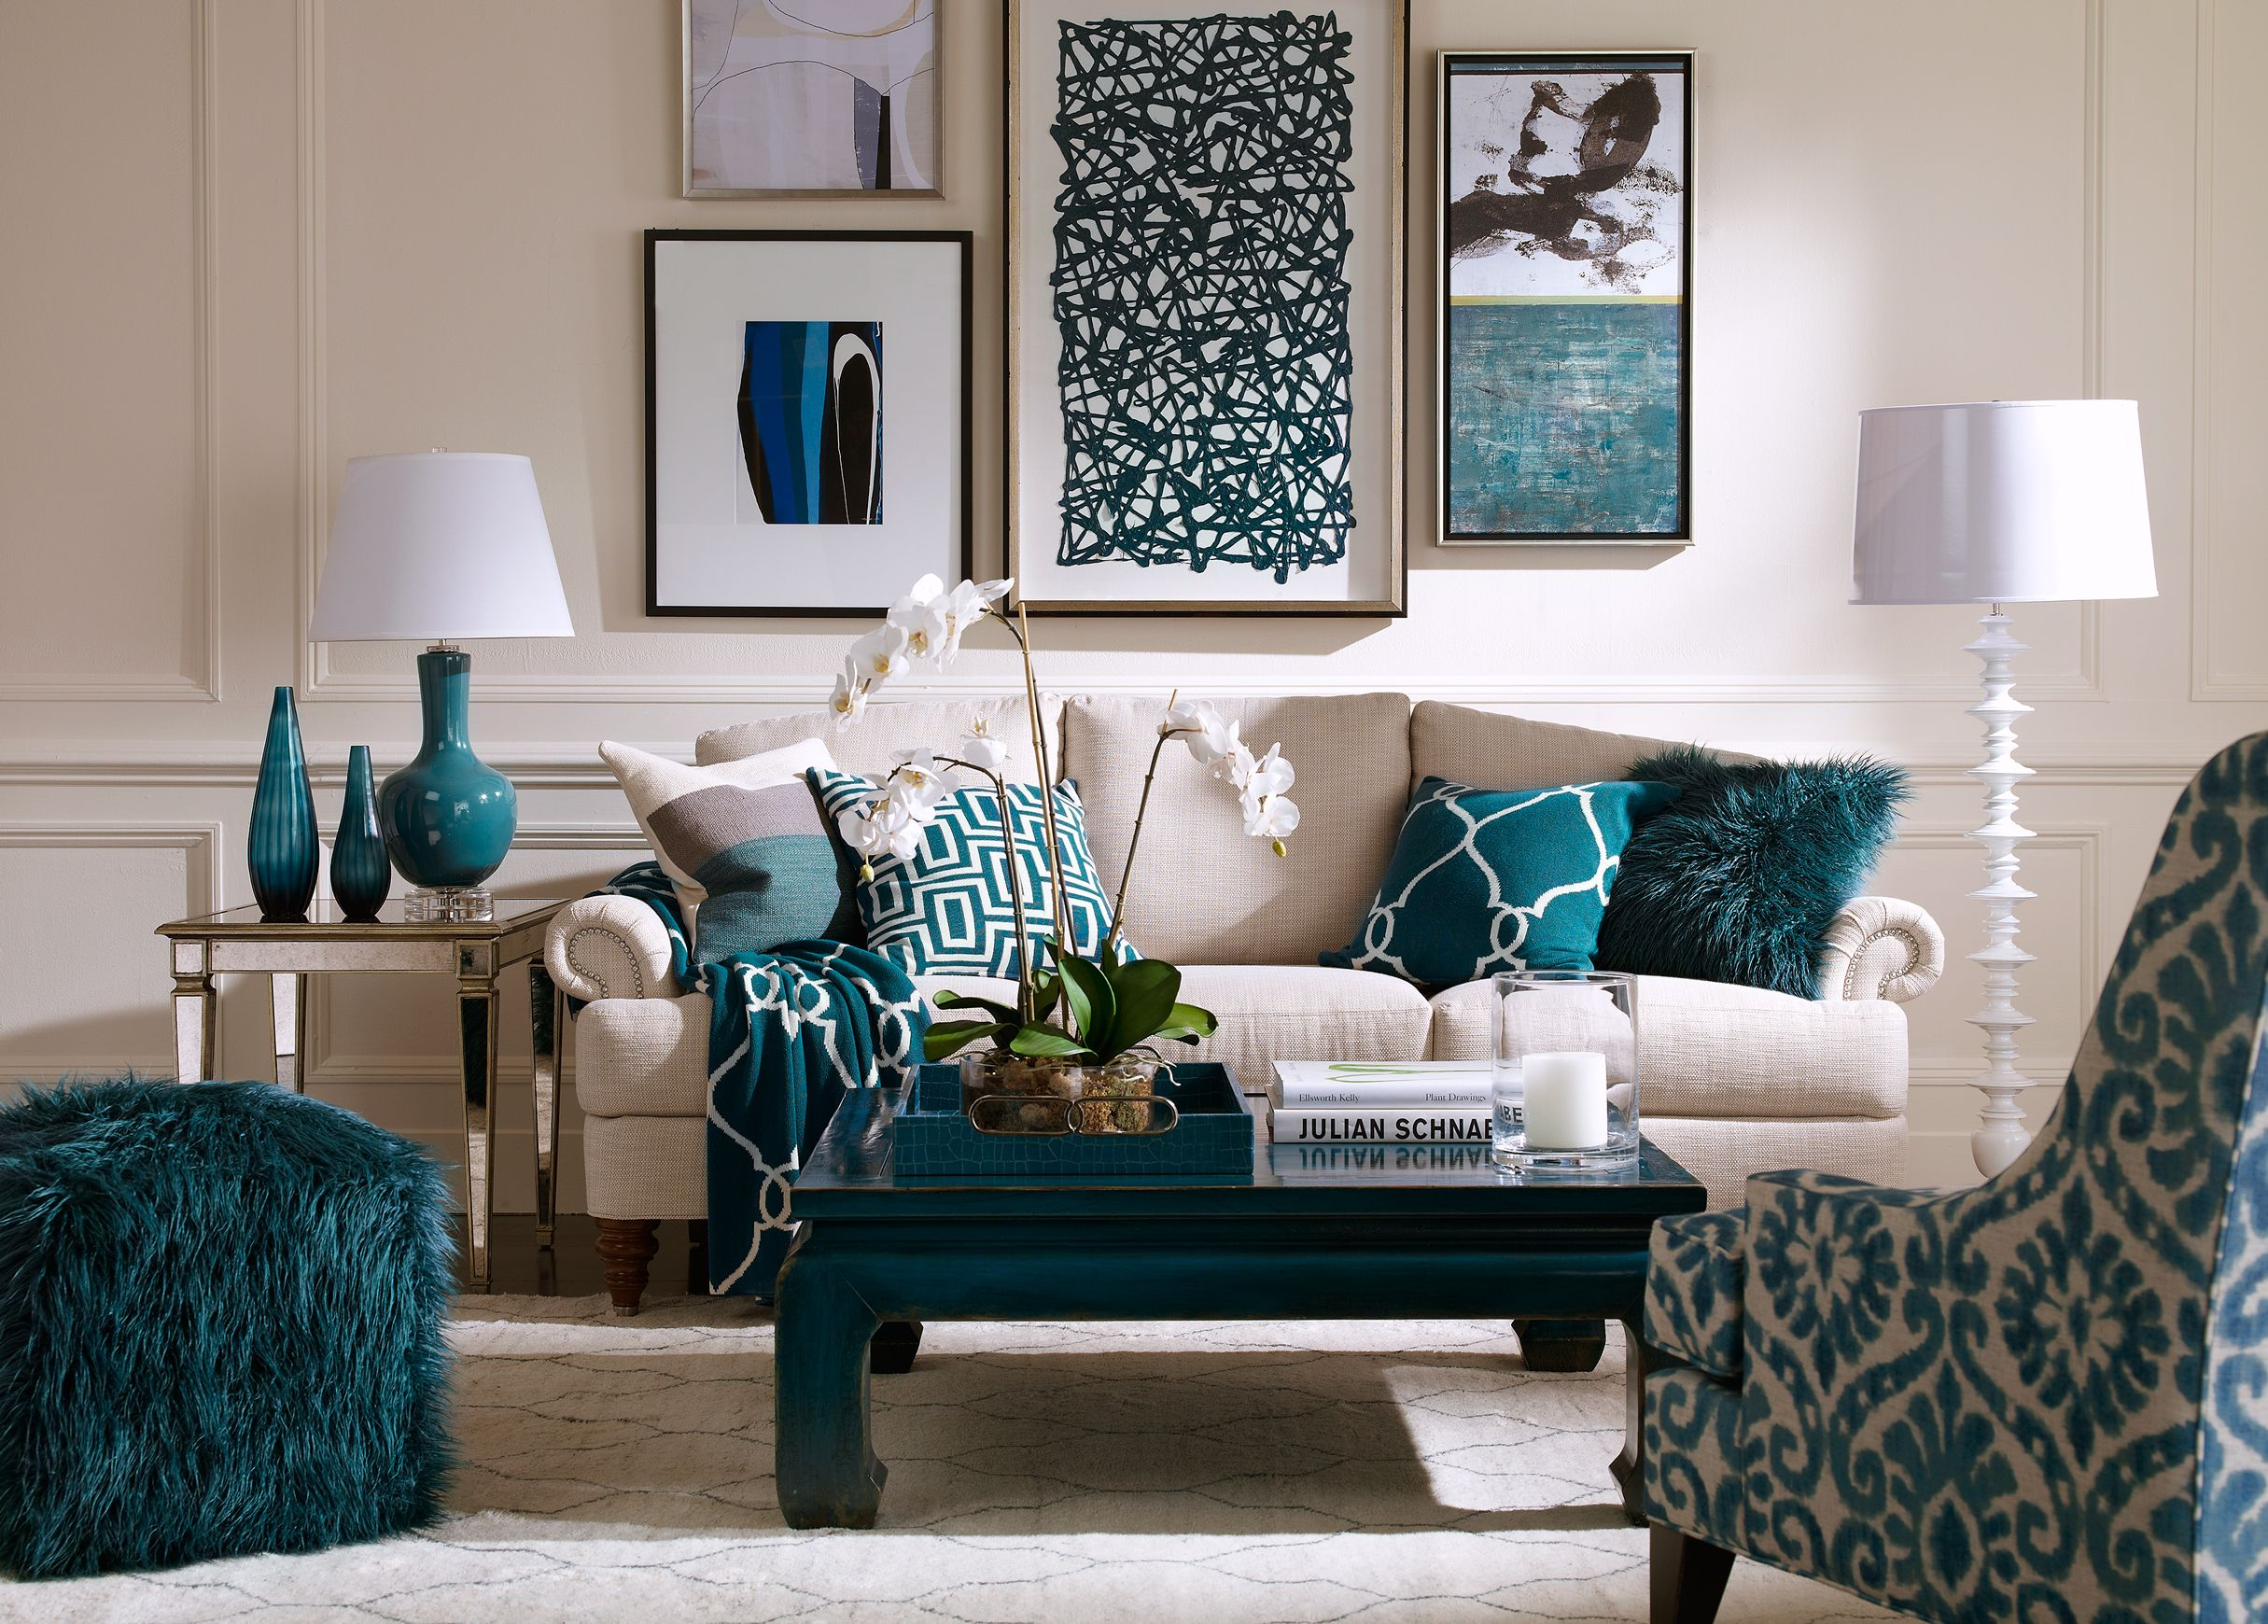 Attrayant Turquoise Dining Room Ideas, Turquoise Rooms, Turquoise Living Room  Accessories, Using Turquoise In Decorating, Decorating With Turquoise  Accents, ...